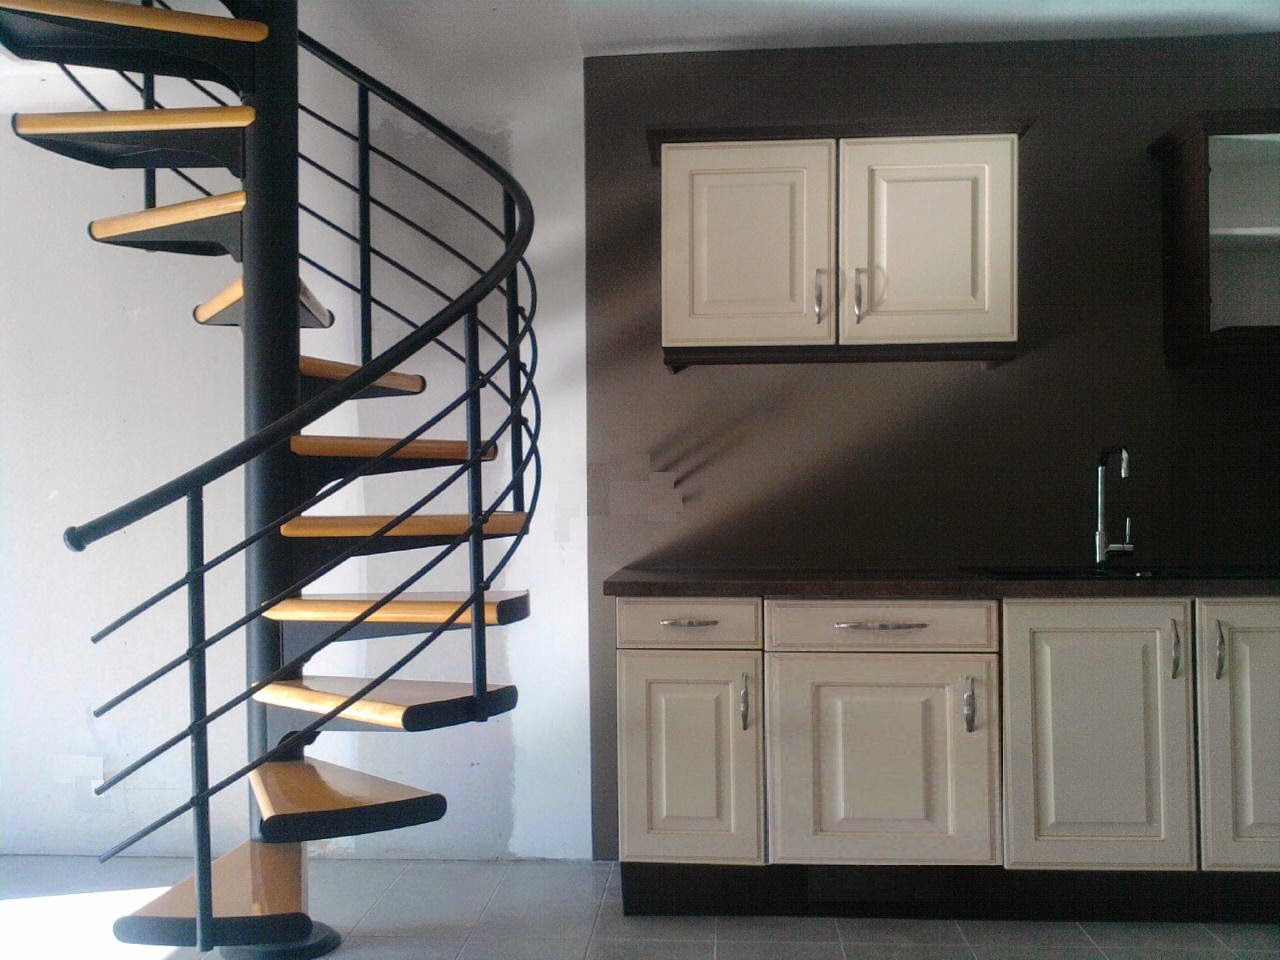 Space saving stairs designs for small homes stairs designs - Modelos de escaleras interiores ...